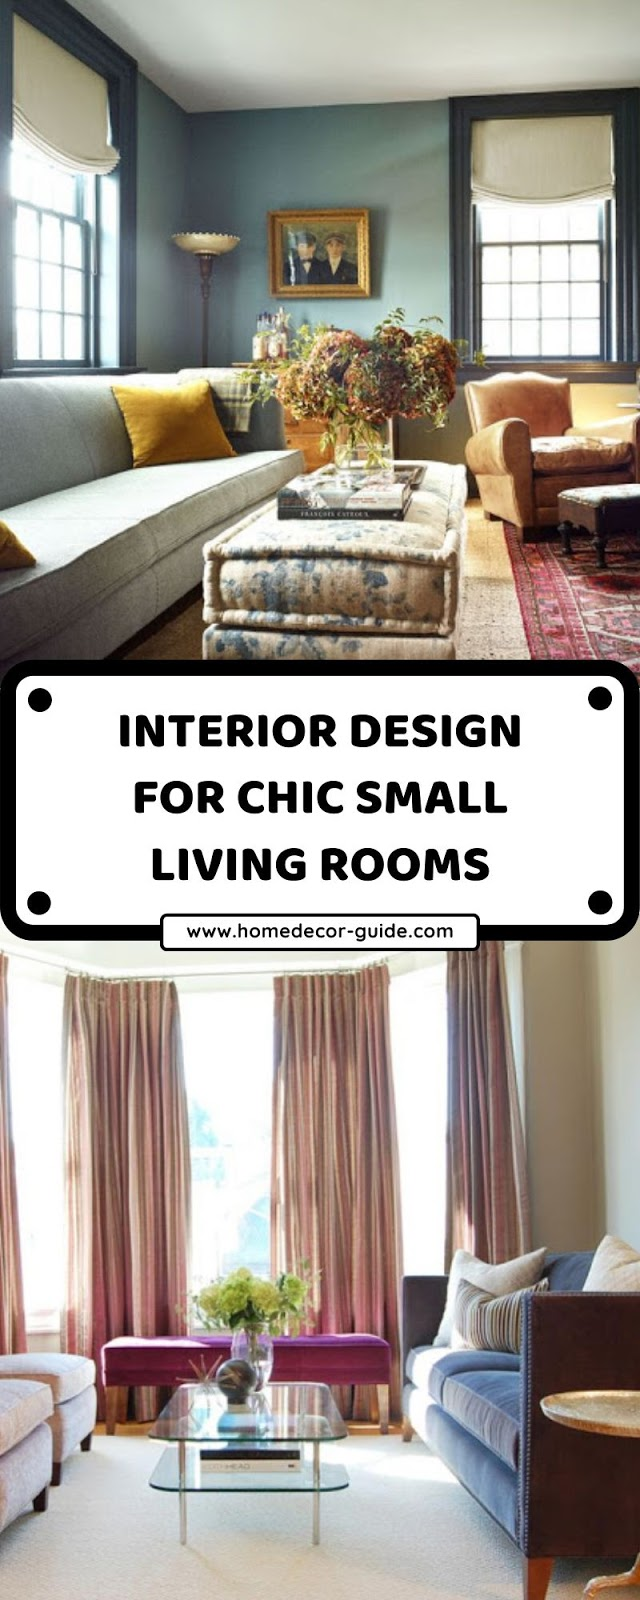 INTERIOR DESIGN FOR CHIC SMALL LIVING ROOMS